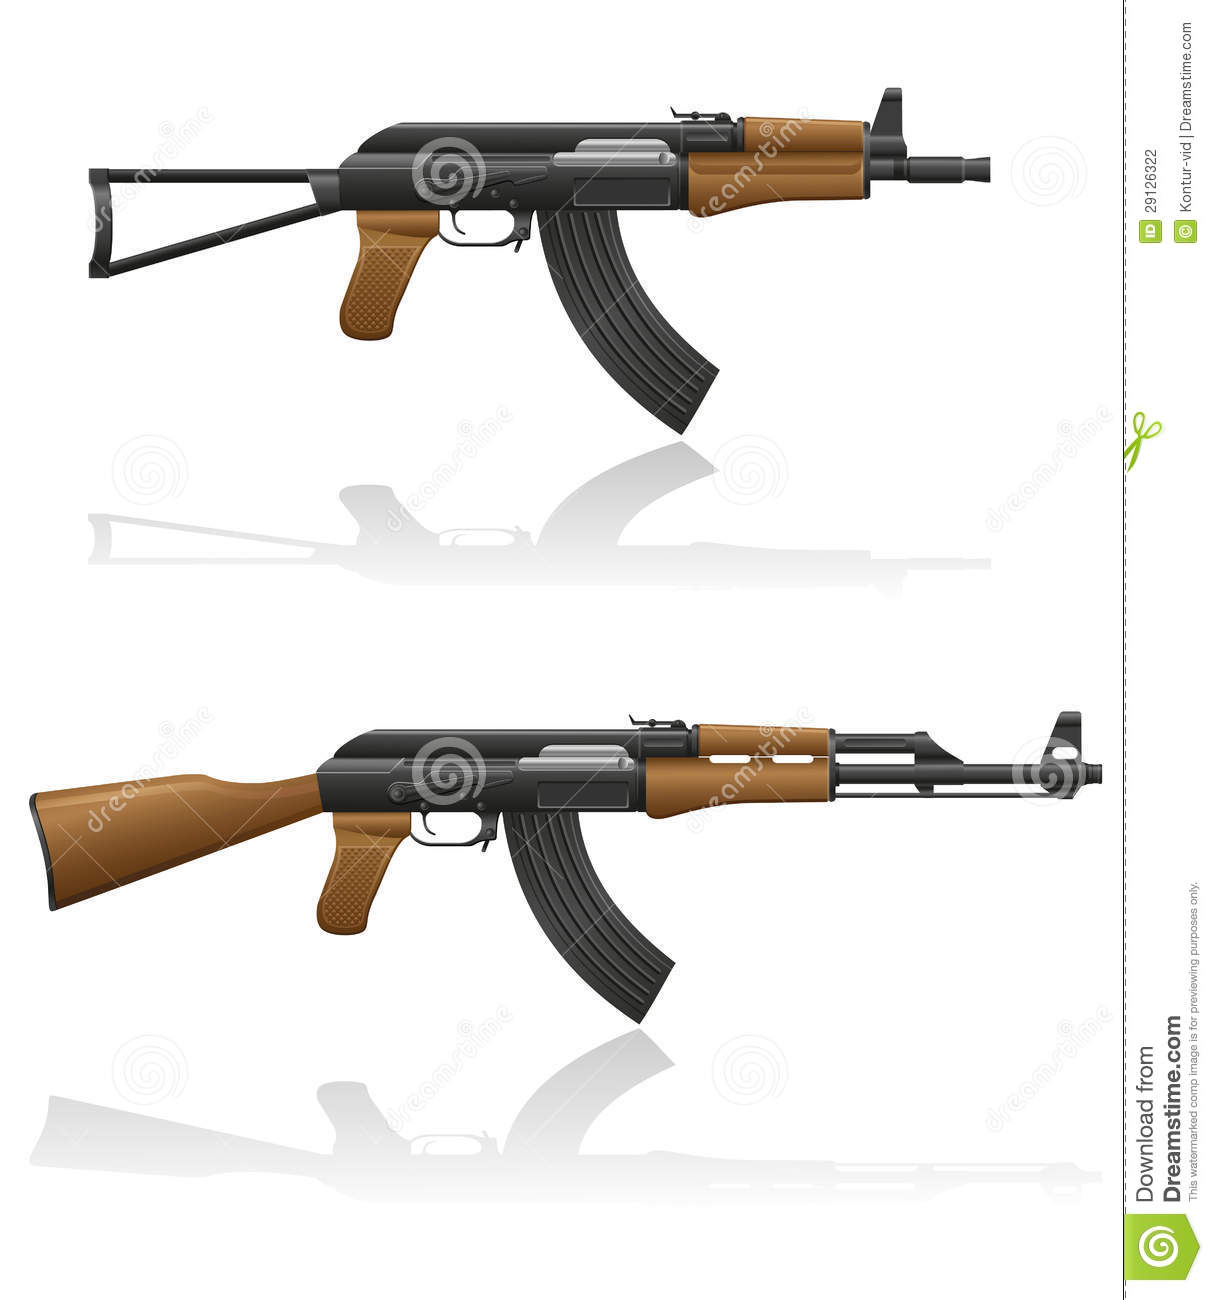 automatic machine ak 47 kalashnikov stock photography image 29126322. Black Bedroom Furniture Sets. Home Design Ideas